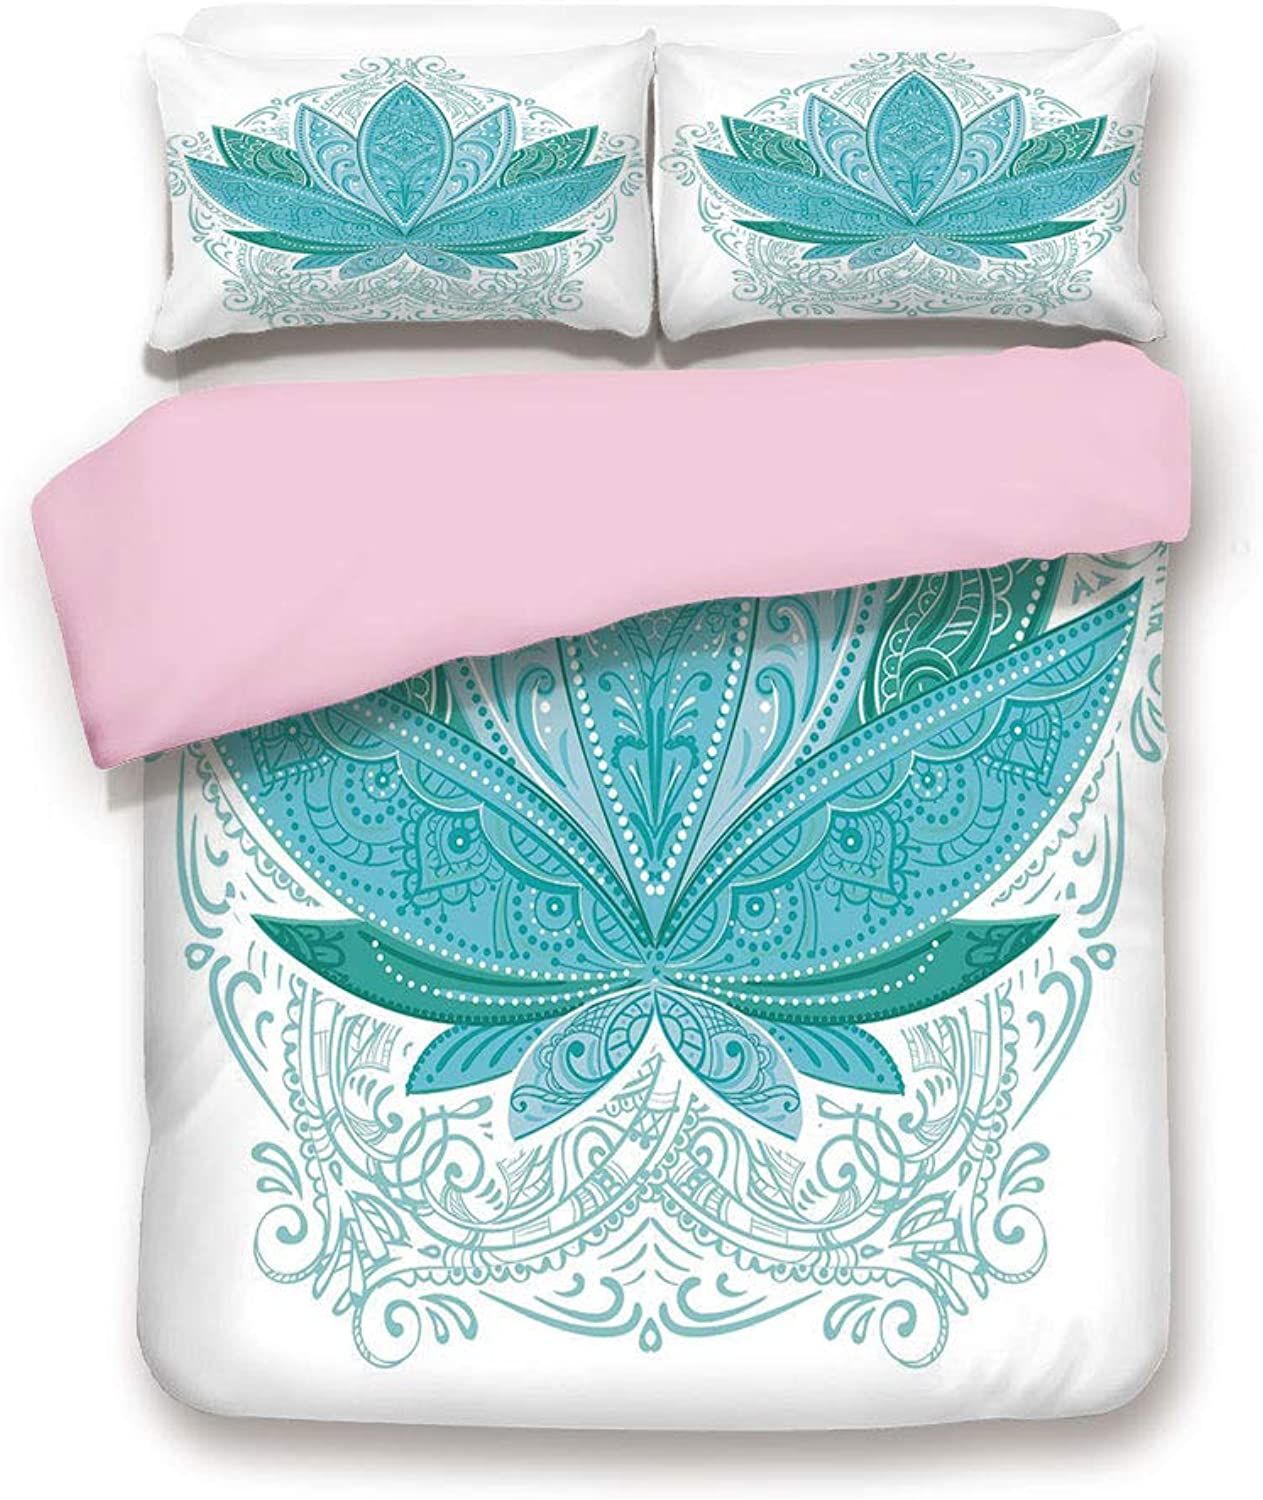 Pink Duvet Cover Set,Twin Size,Lotus Flower with Ornaments Ethnic Exotic Petals Mehndi Traditional Boho Design,Decorative 3 Piece Bedding Set with 2 Pillow Sham,Best Gift For Girls Women,Teal Sky bluee